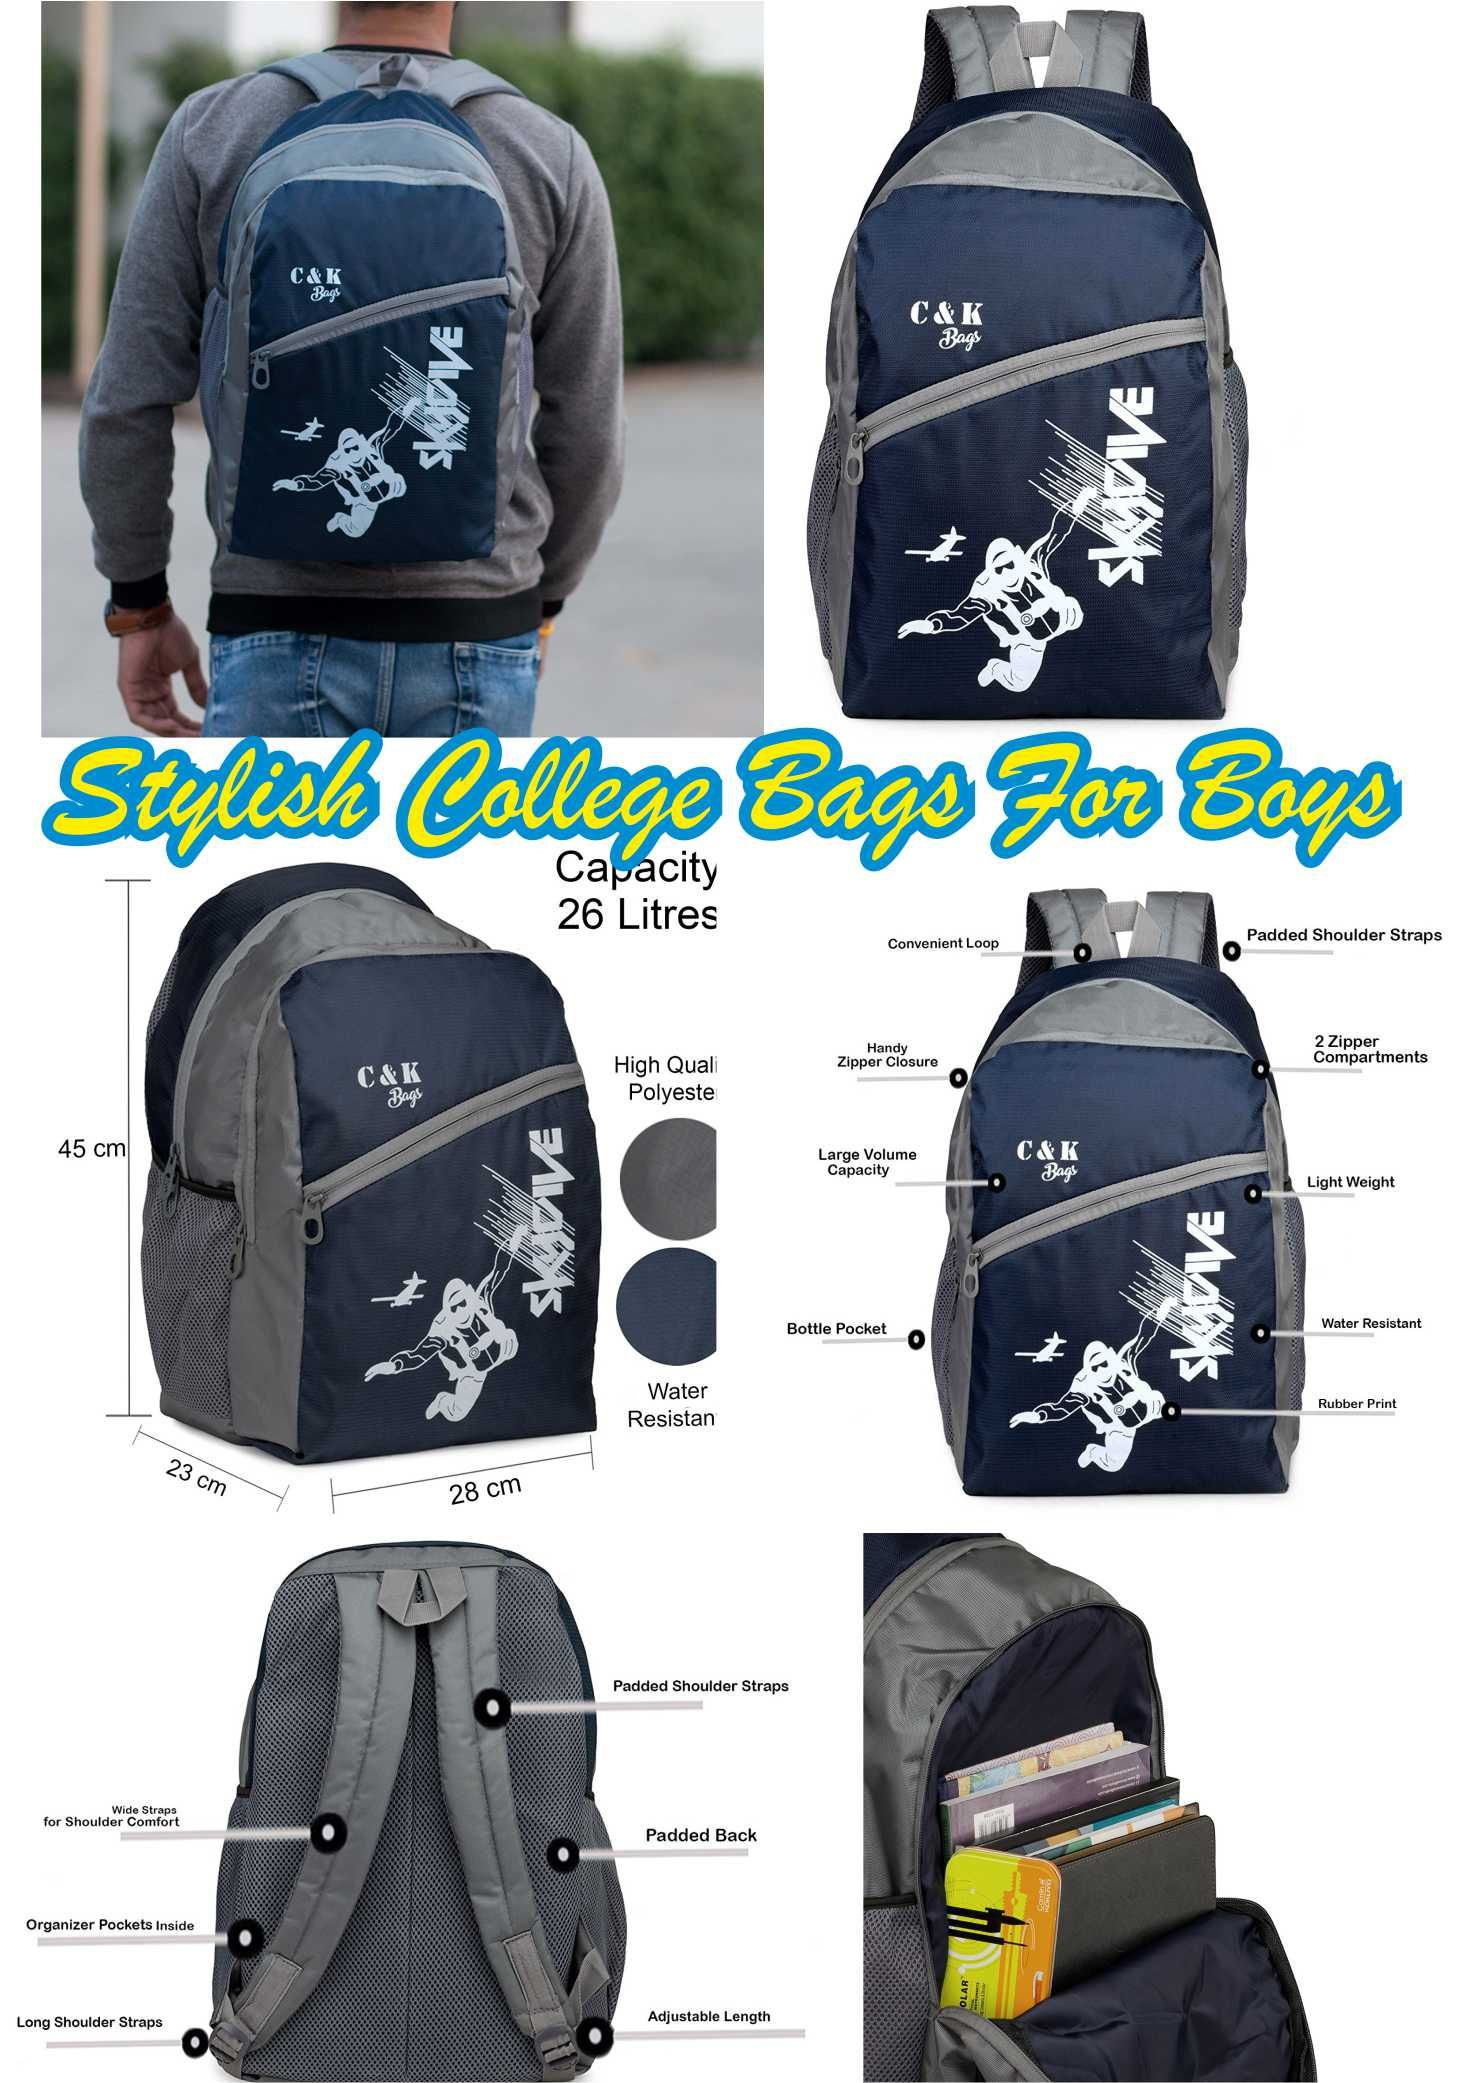 98da7c6d506f If you are finding college bags for girl or college bags flipkart then you  are in